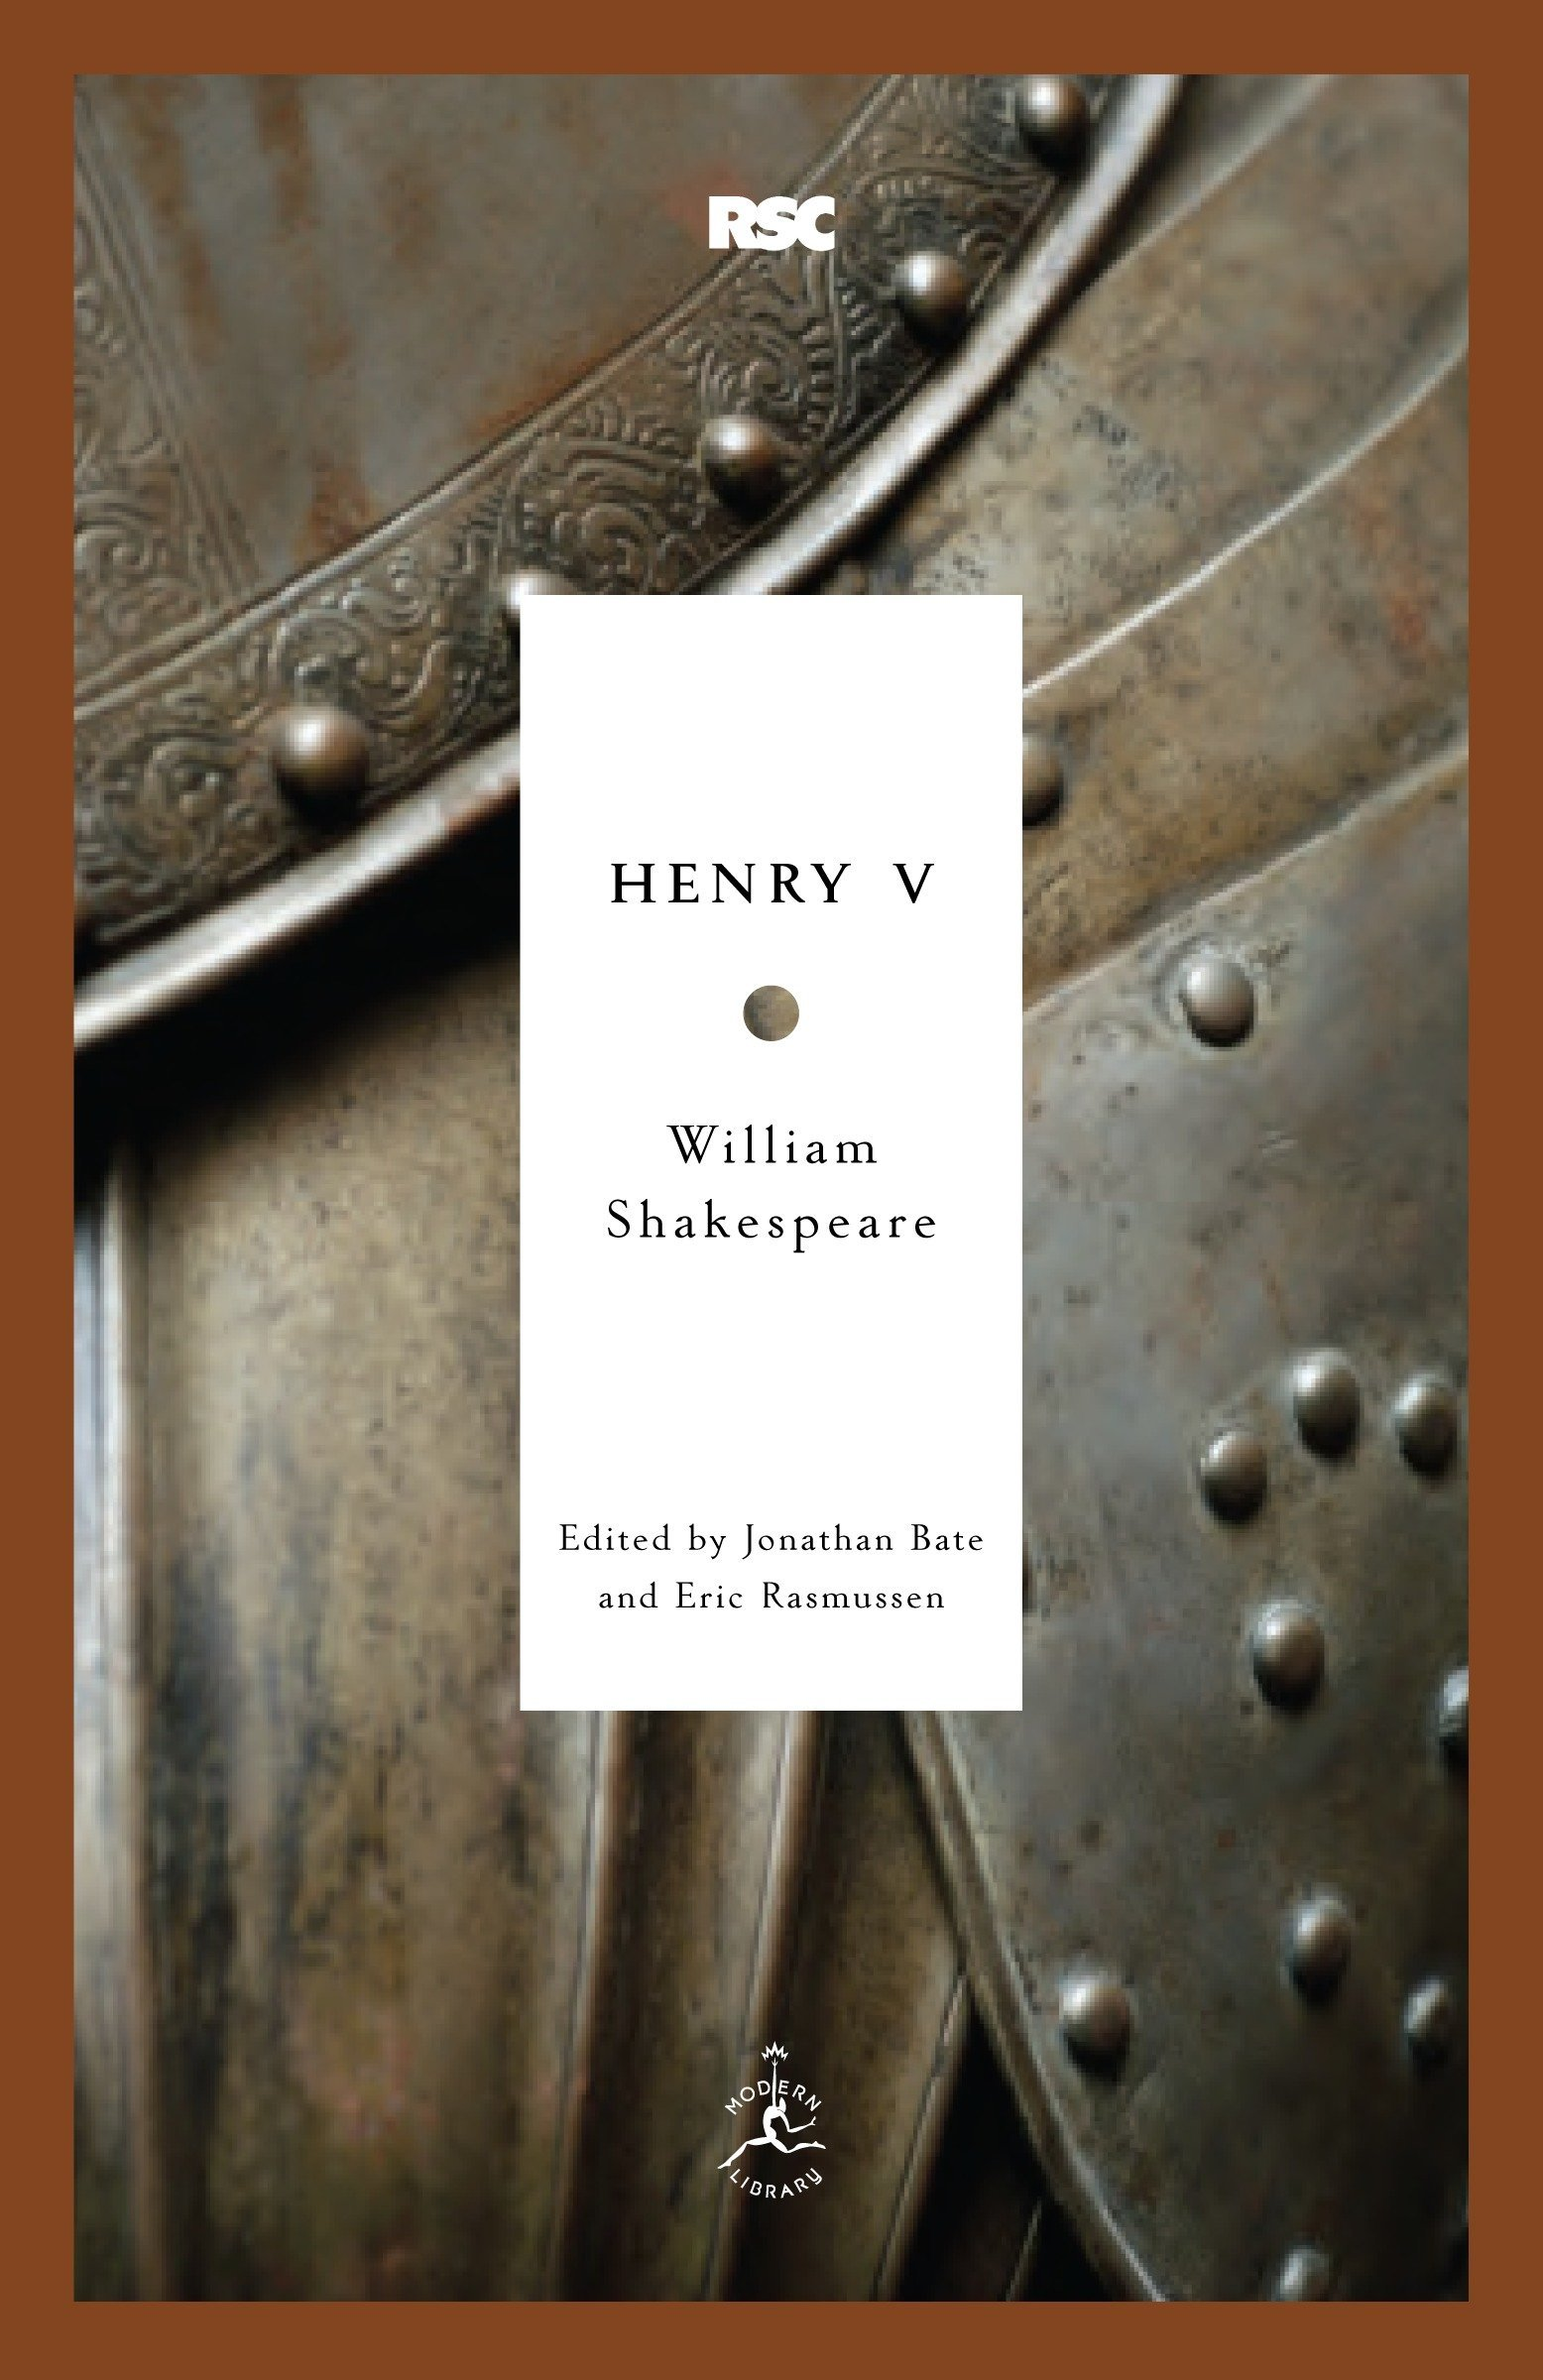 Henry V (Modern Library Classics) Paperback – May 4, 2010 William Shakespeare Jonathan Bate Eric Rasmussen 081296926X